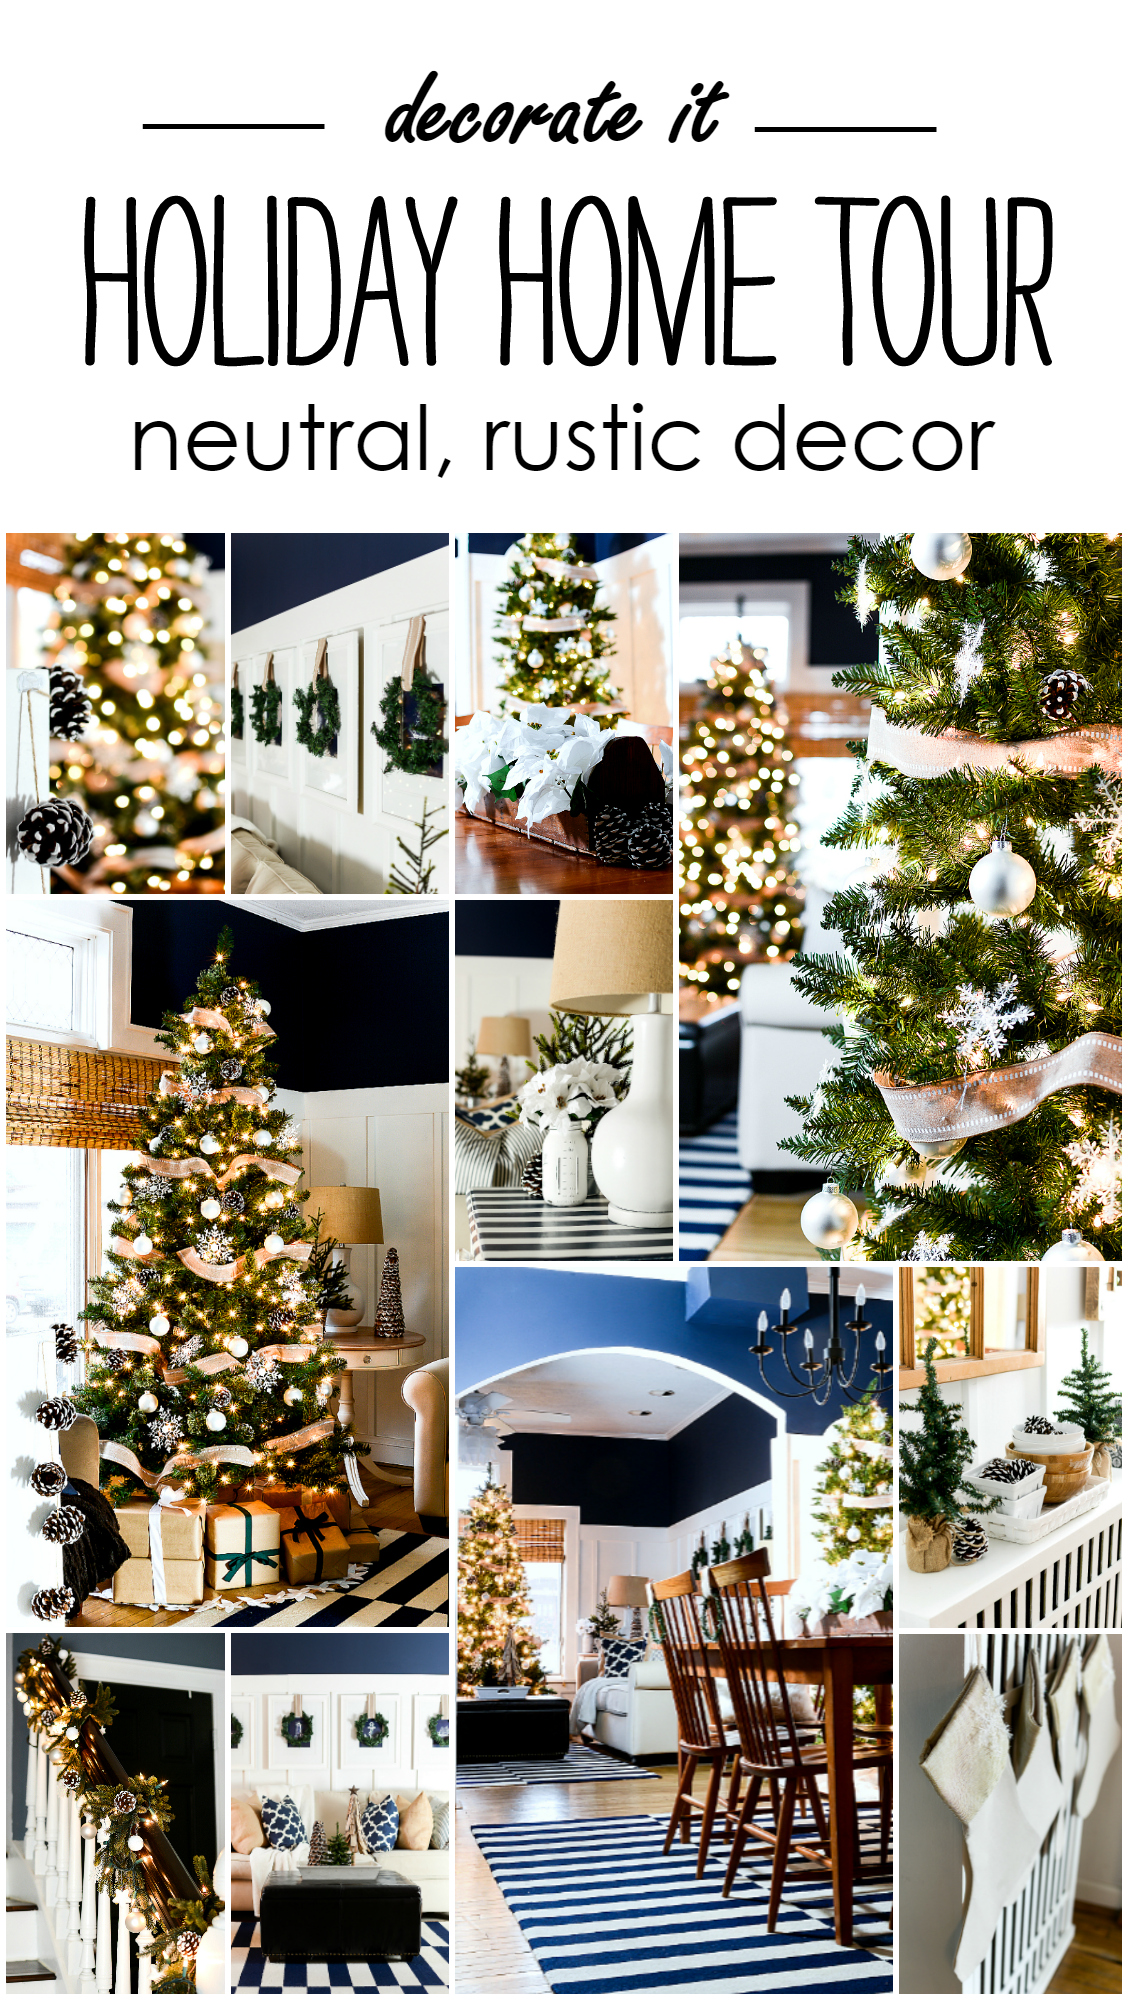 Christmas Decor in Neutral Colors with Navy and White